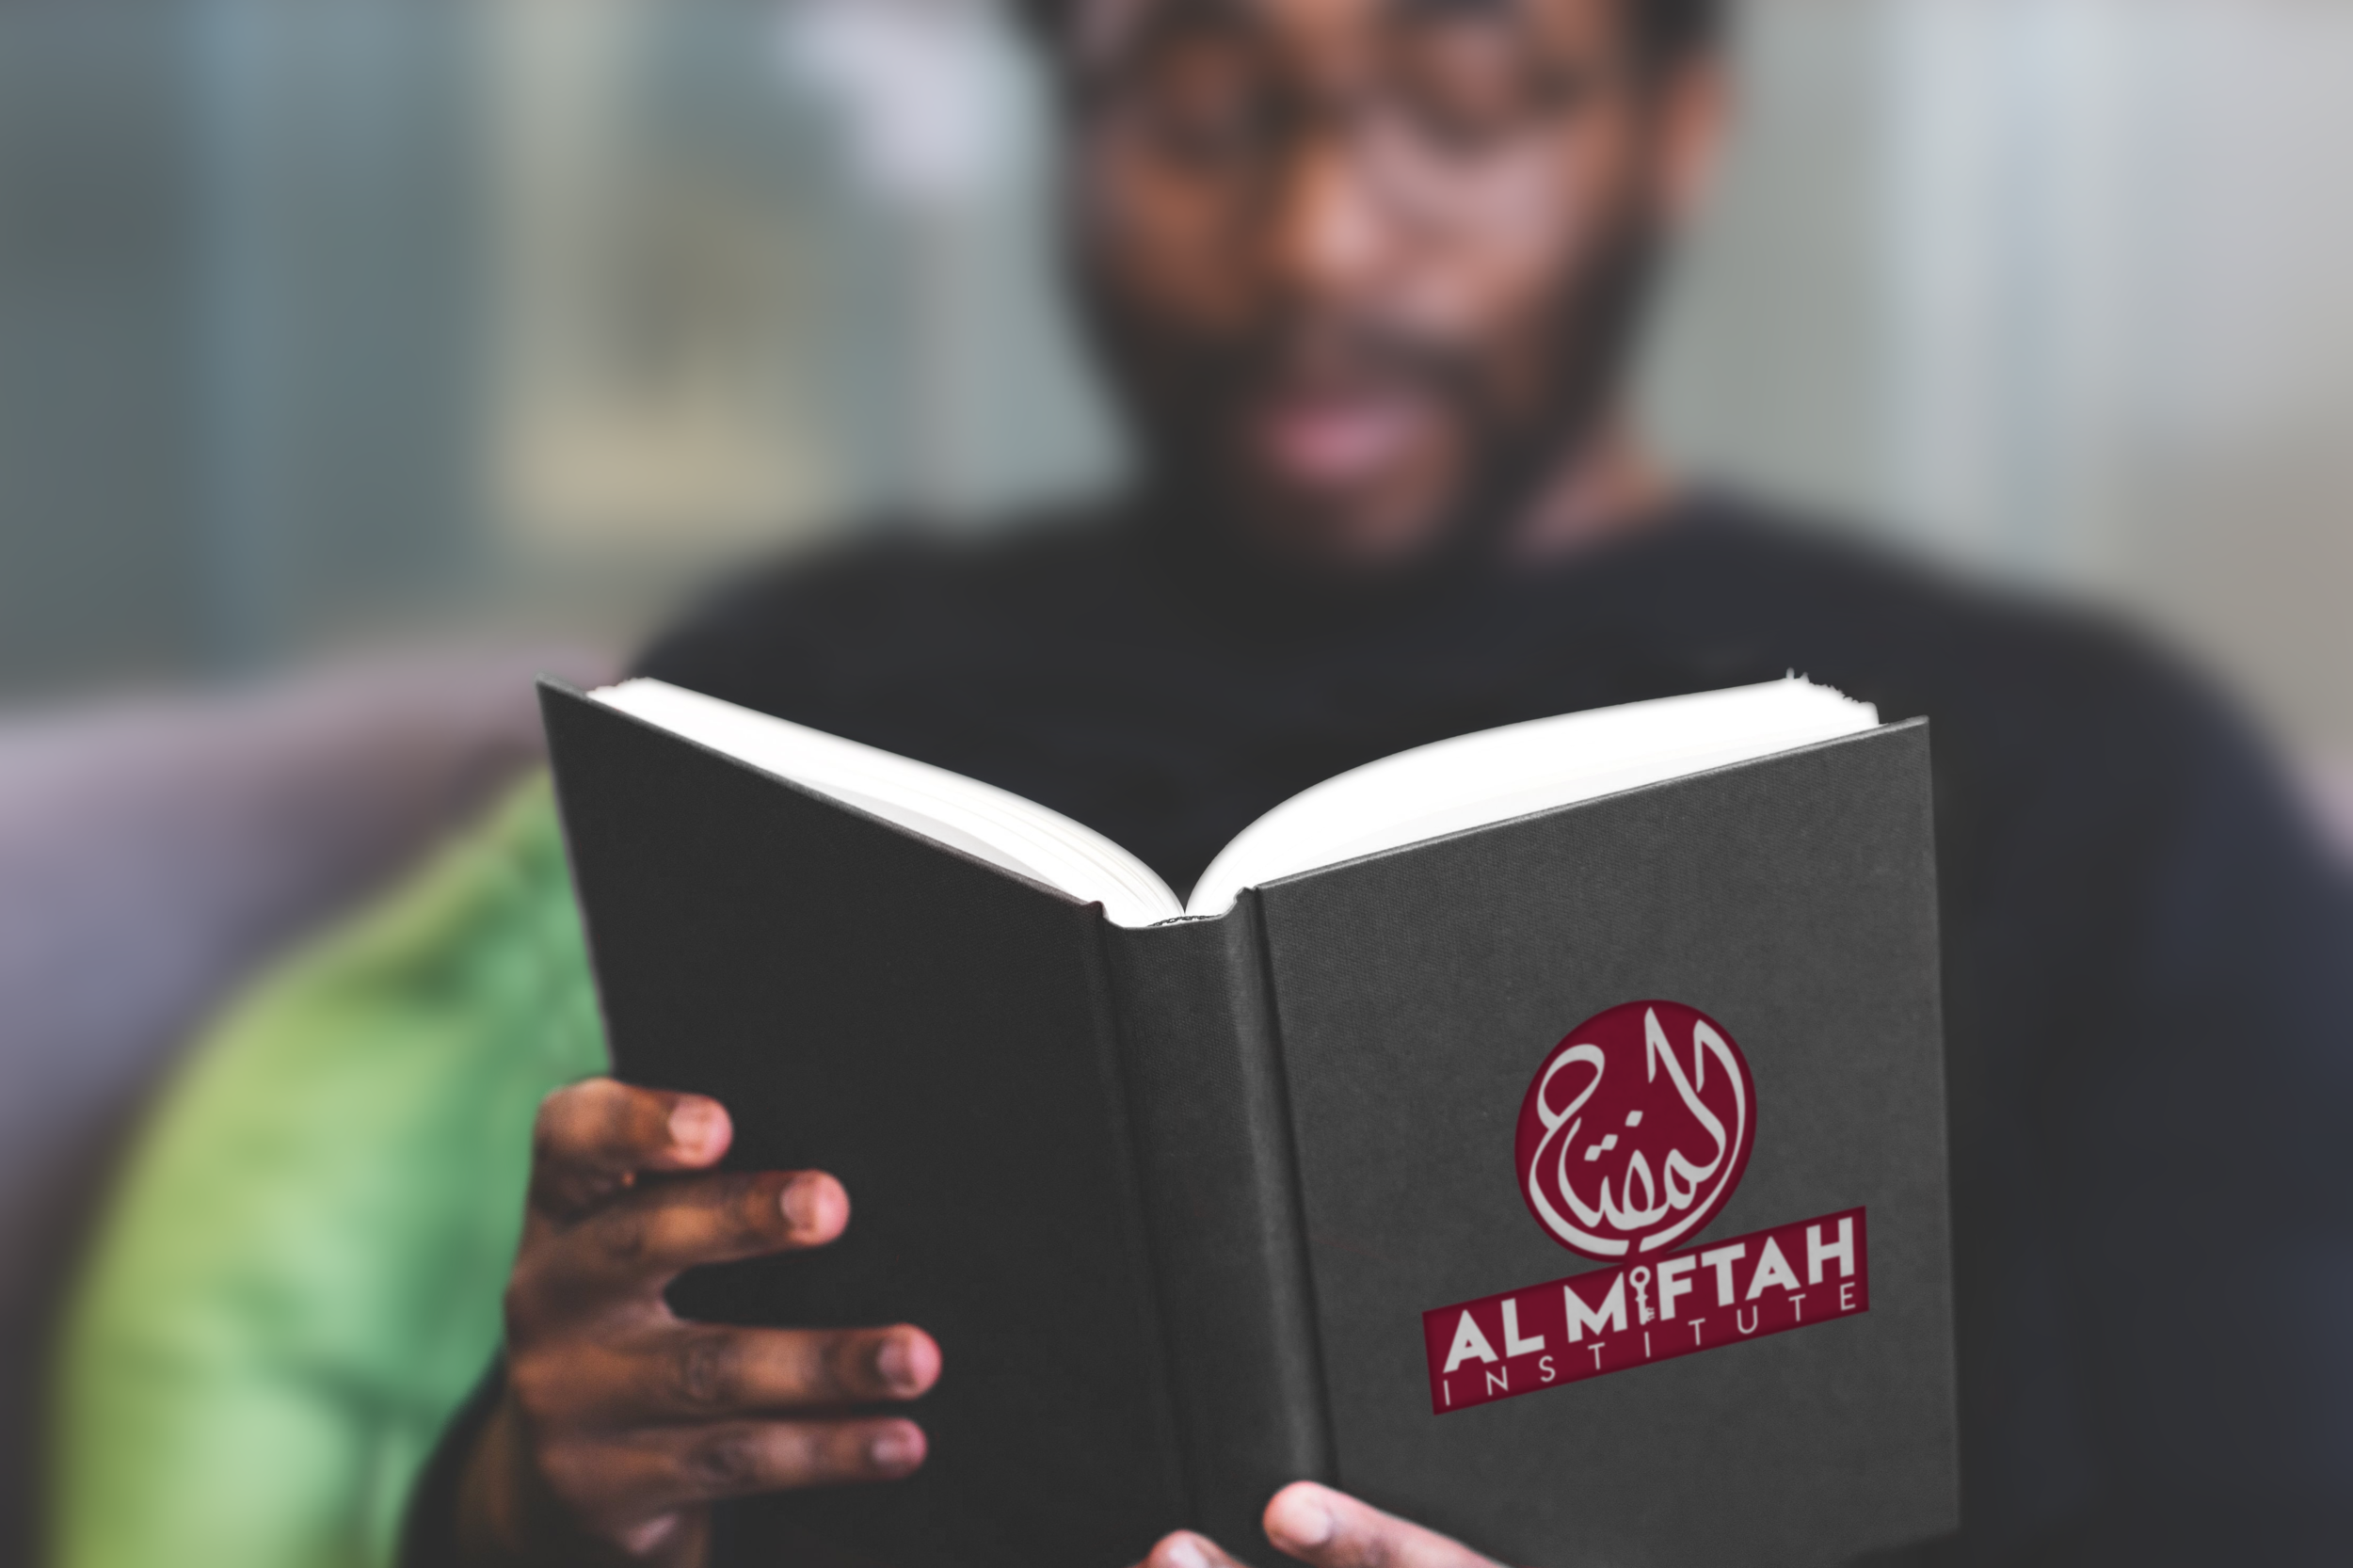 Develop Your Ability To Read Hadith & Provide Commentary - Develop your skills in being able to read books of Hadith, become acquainted with the language of Hadith, its themes and styles in order to be able to identify key words in Arabic, Shar'i terminology, and recall names of some of the famous narrators of Hadith from amongst the Shaba.